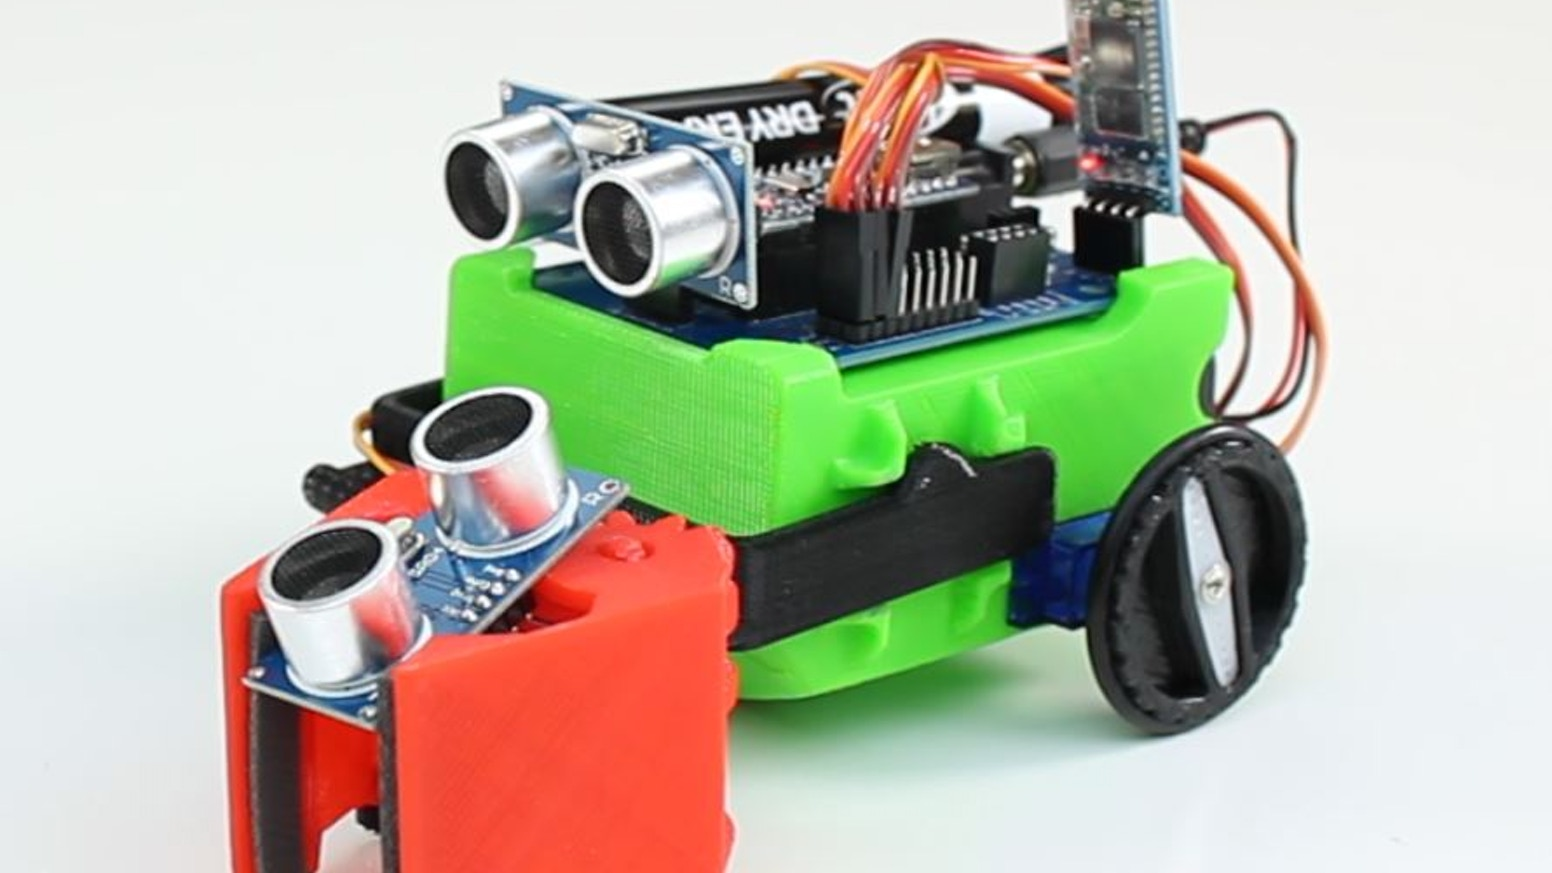 The 7th LittleBot is an affordable and simple robotics kit. Anyone can build it, learn from it and then expand it.